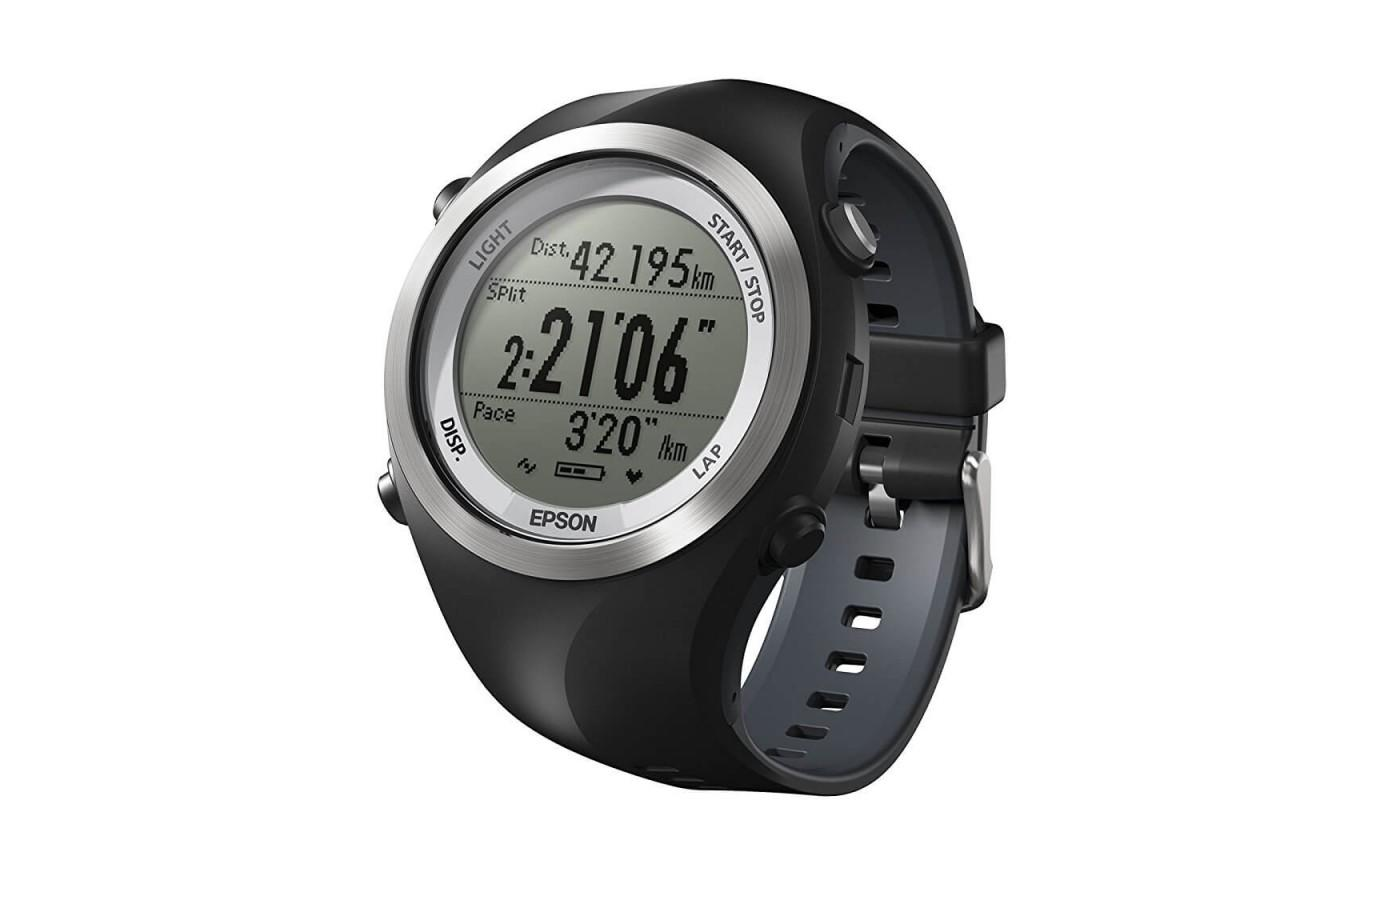 the Epson Runsense SF-710 is a straightforward activity tracker